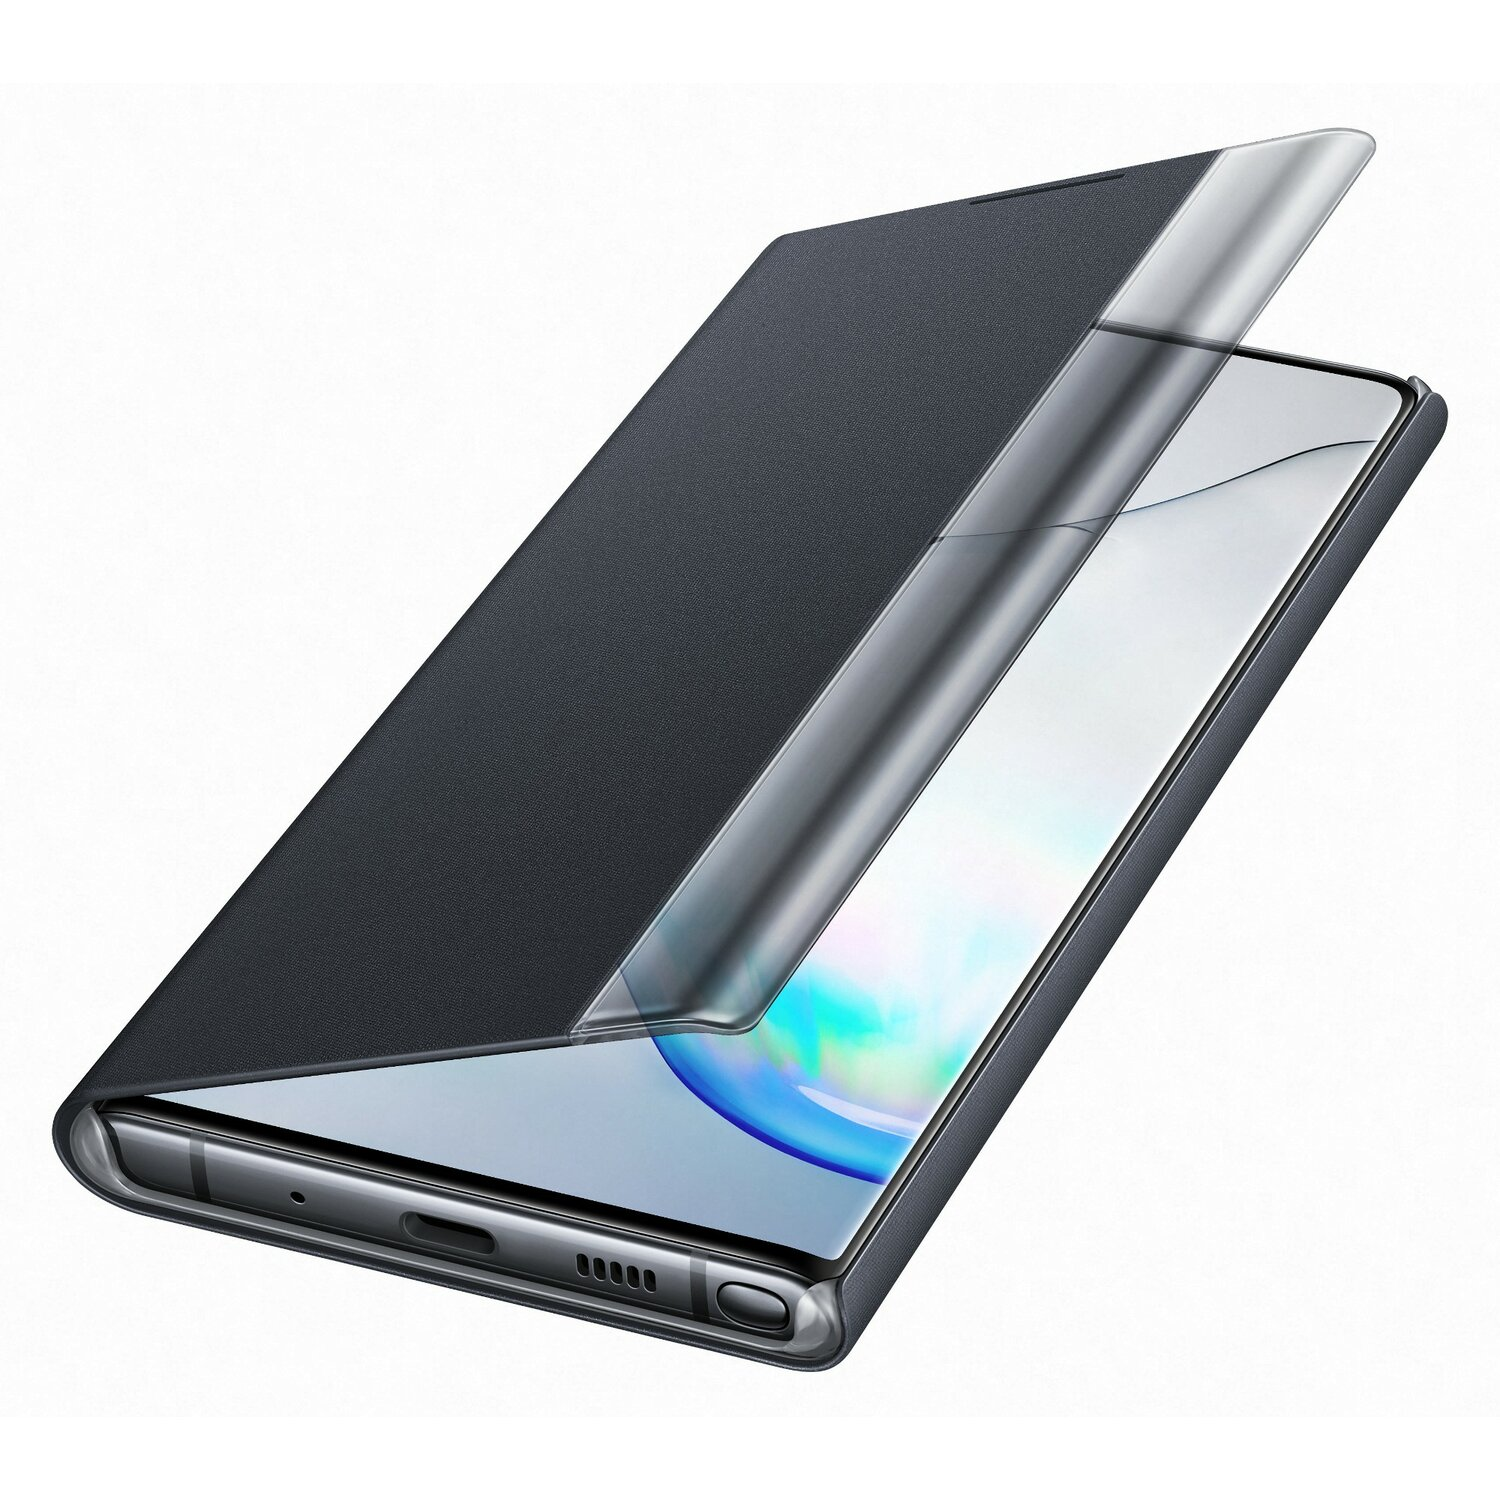 Etui na smartfon SAMSUNG Clear View Cover do Galaxy Note 10 Czarny EF-ZN970CBEGWW